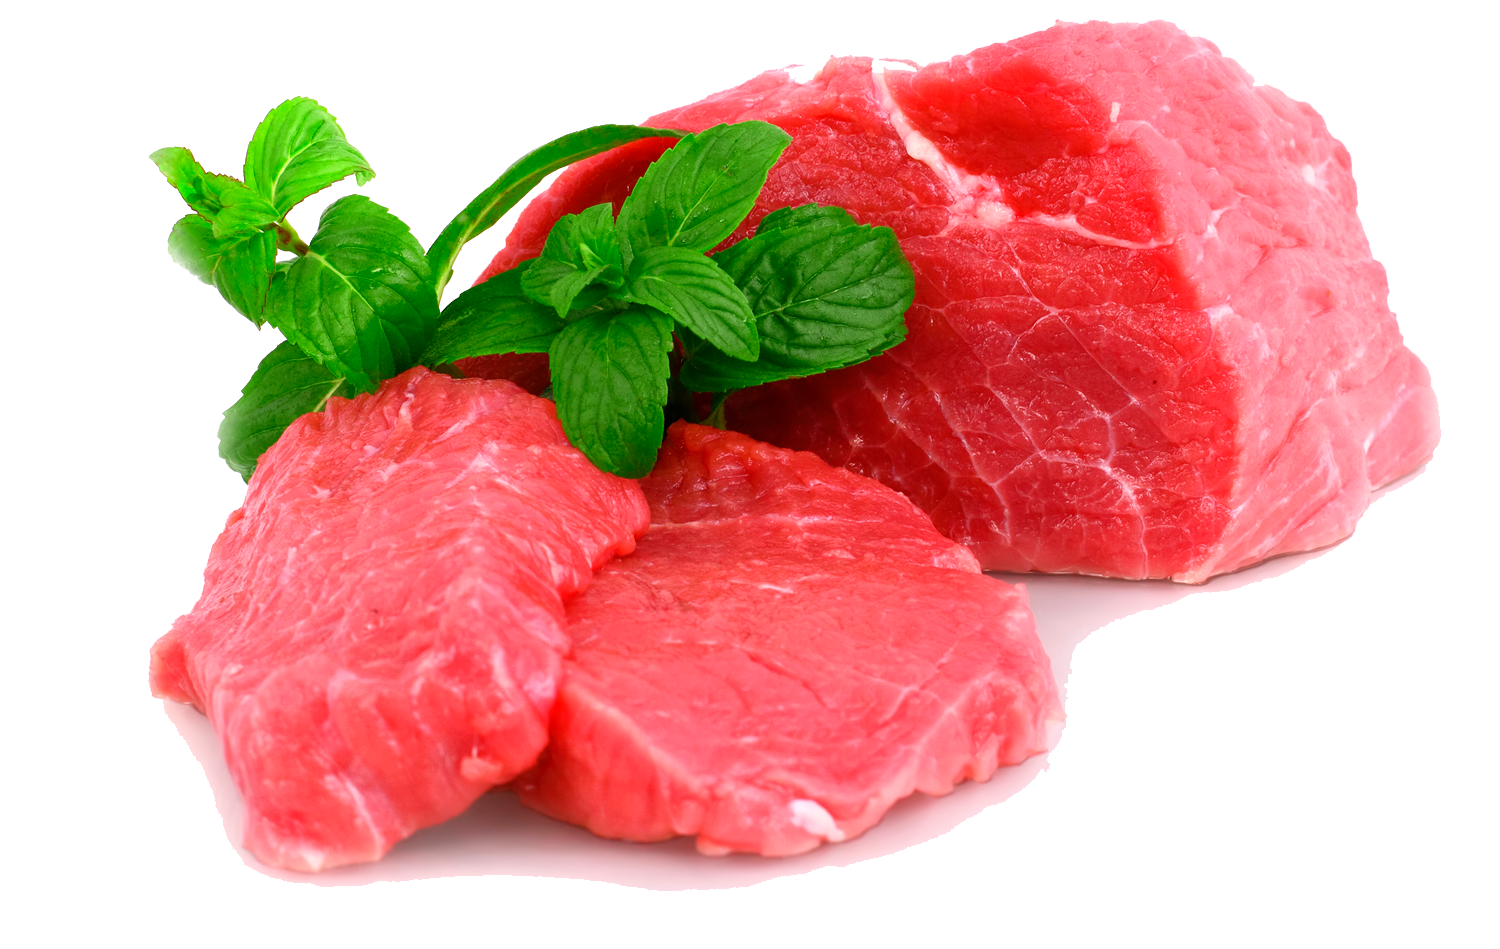 Carne De Res Png: Download Meat Picture HQ PNG Image